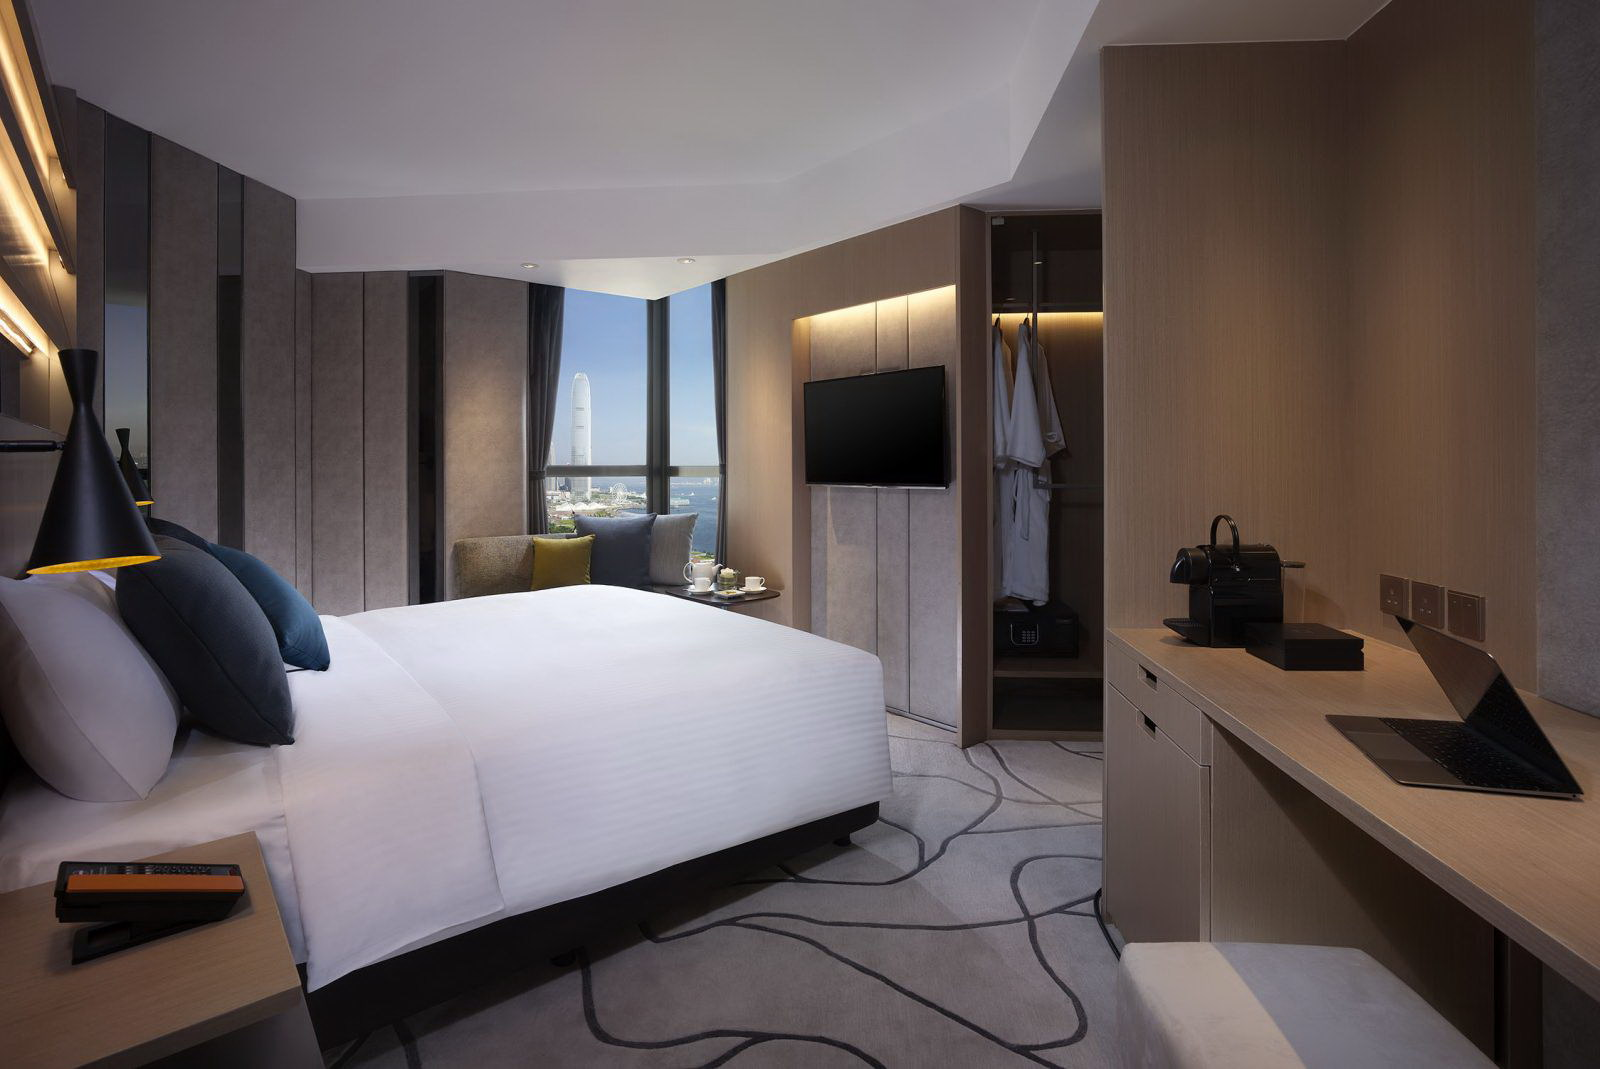 The Optimum Floor Executive Room